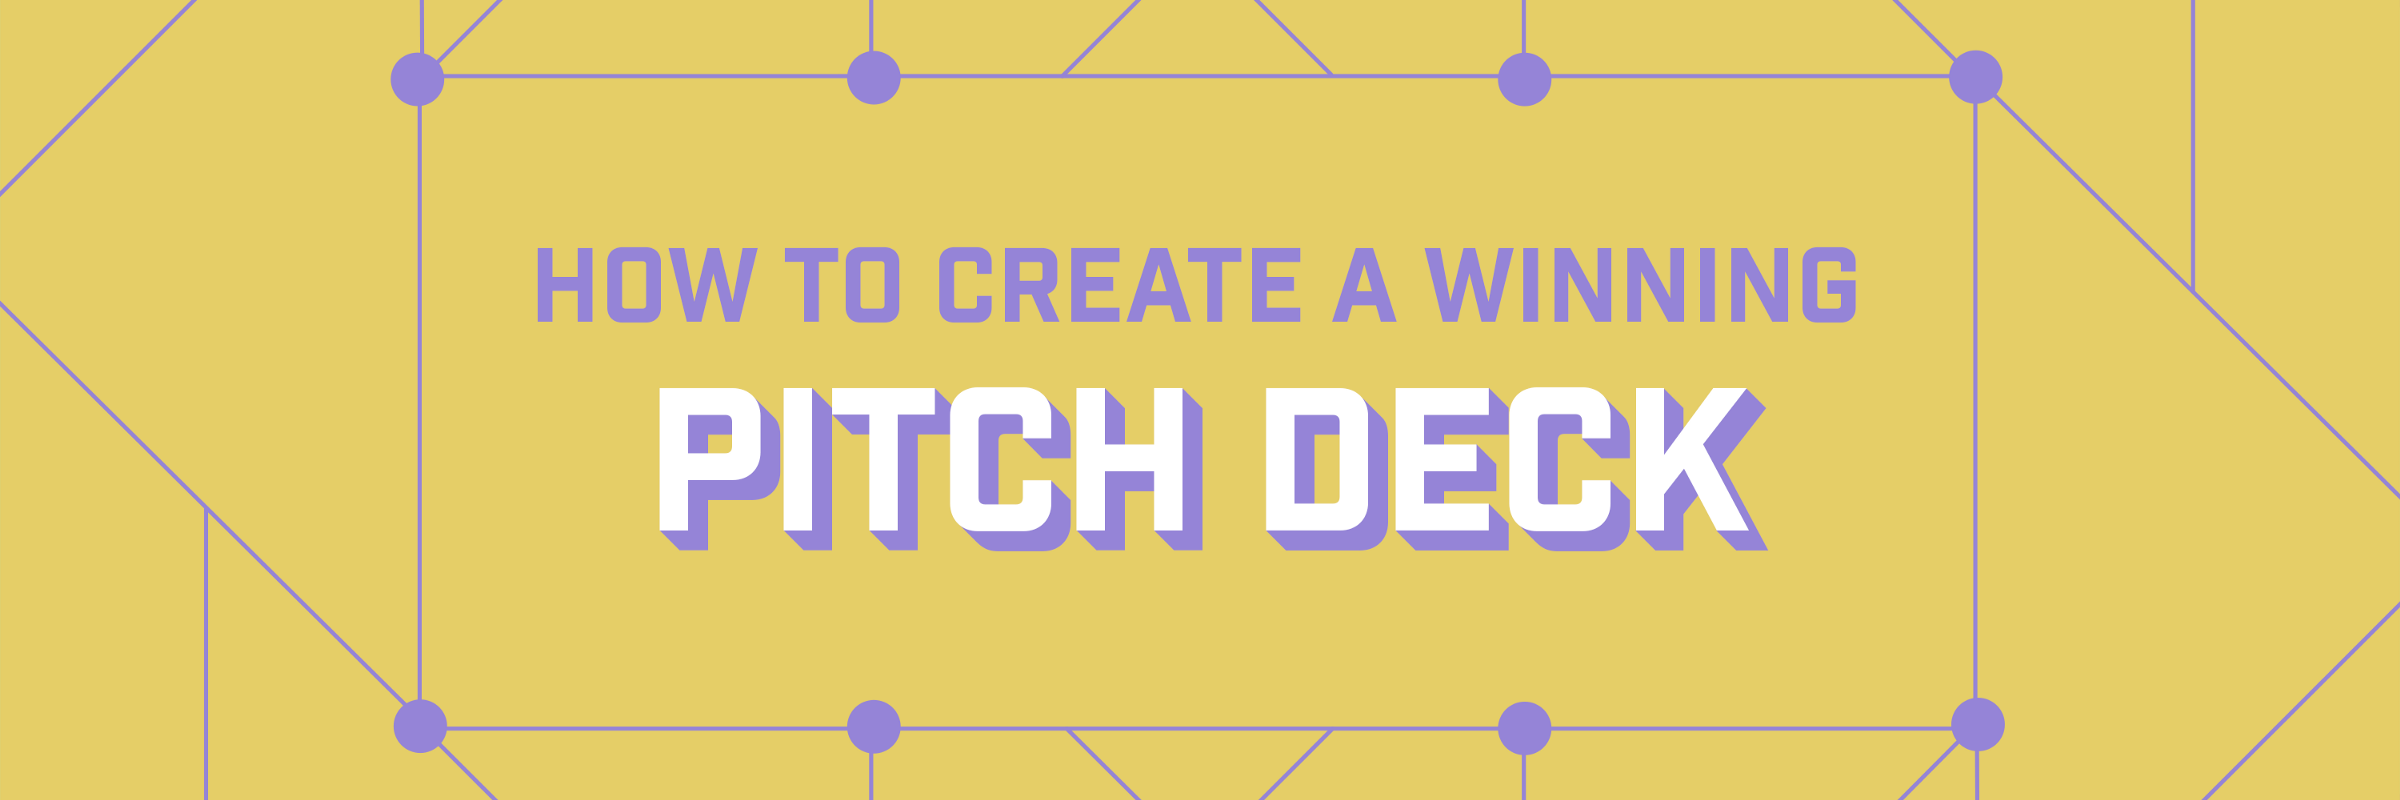 Startup Cheat-Sheet: How To Create a Winning Pitch Deck - By